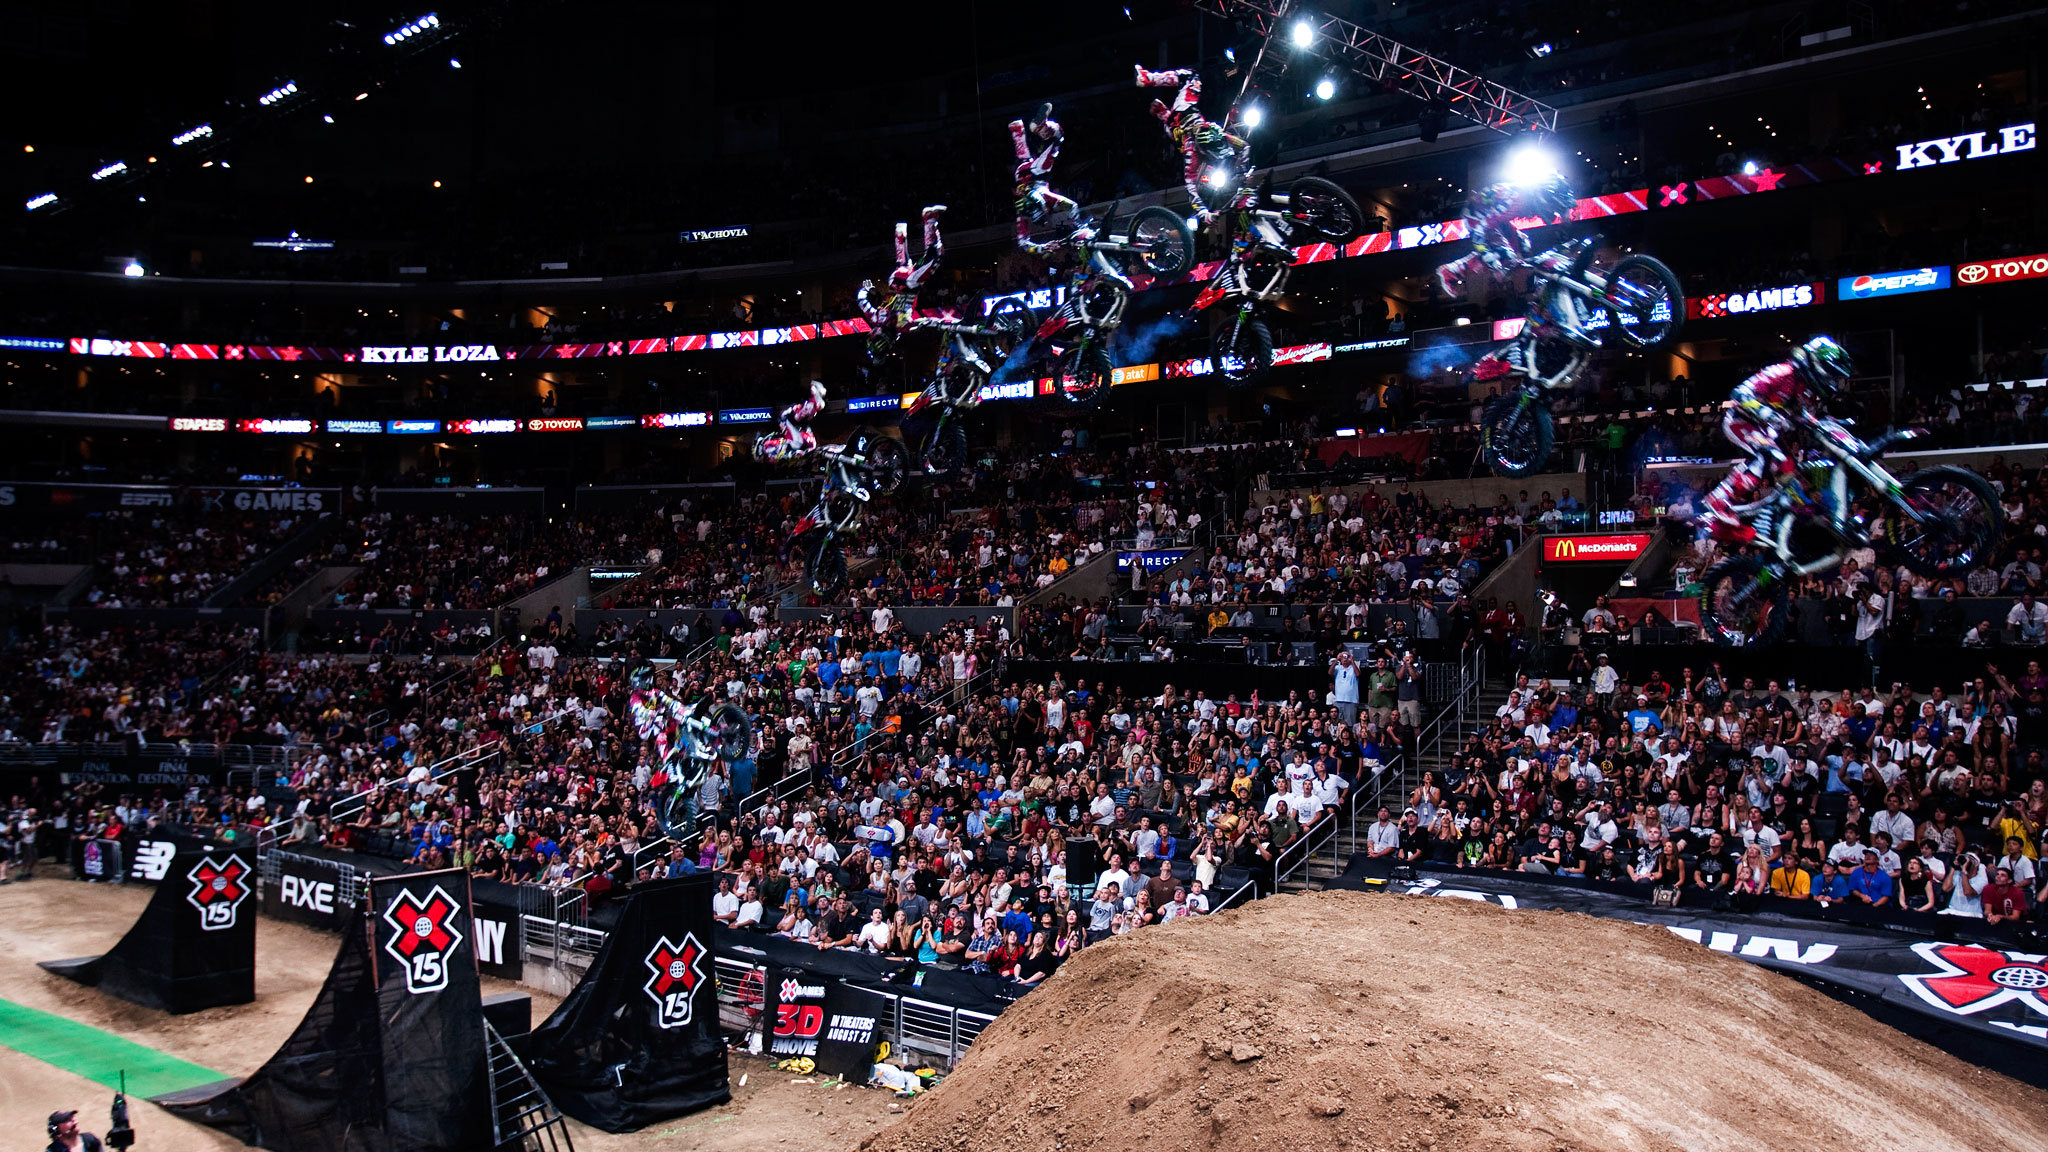 X games discontinues moto x best trick and snowmobile best trick xgames kyle loza voltagebd Image collections